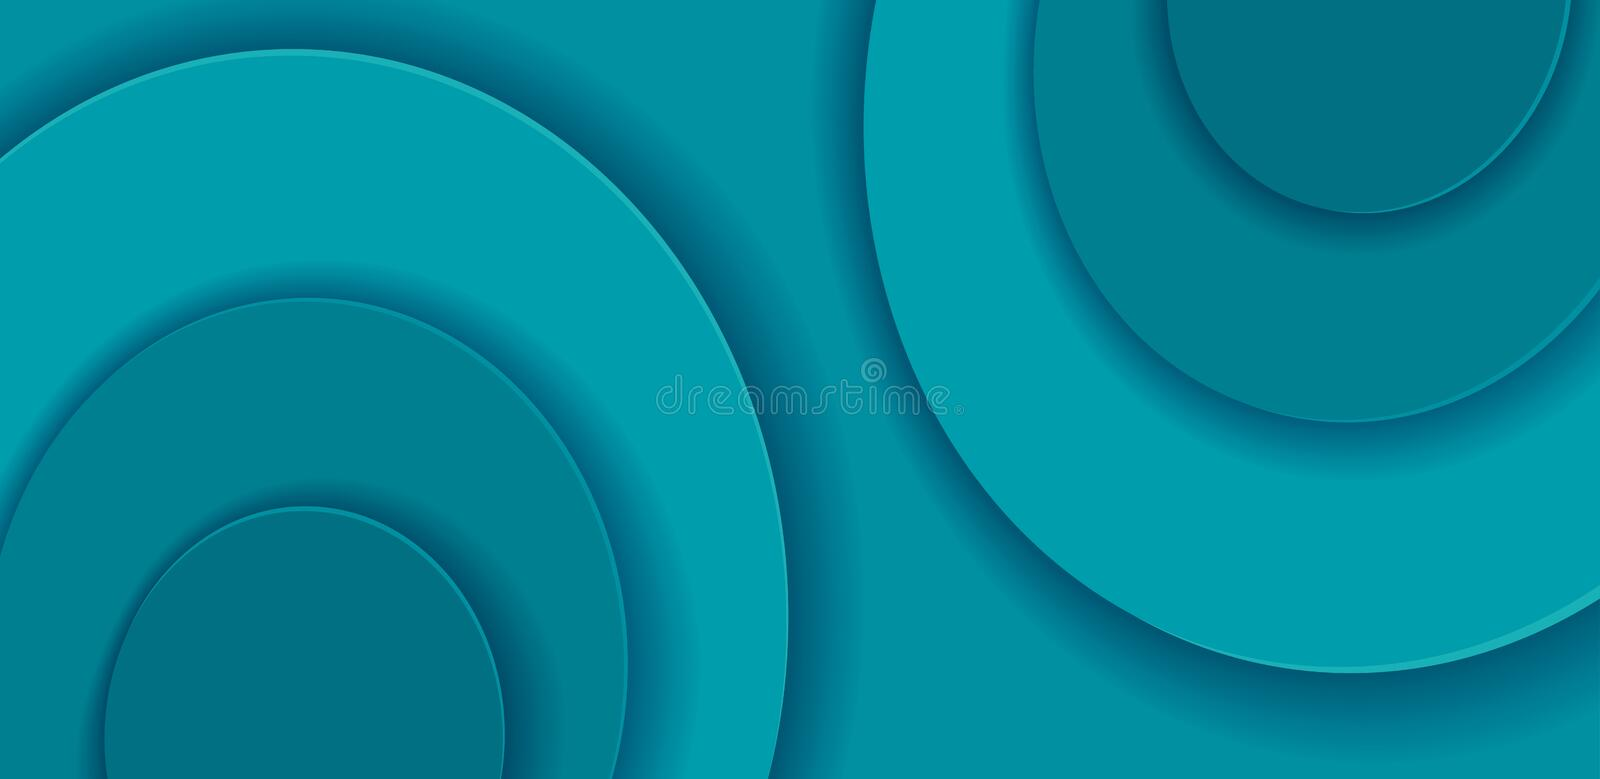 Paper cut Round shapes on horizontal background. Abstract turquoise vector template with multi layers smooth shapes. Modern 3d stock illustration